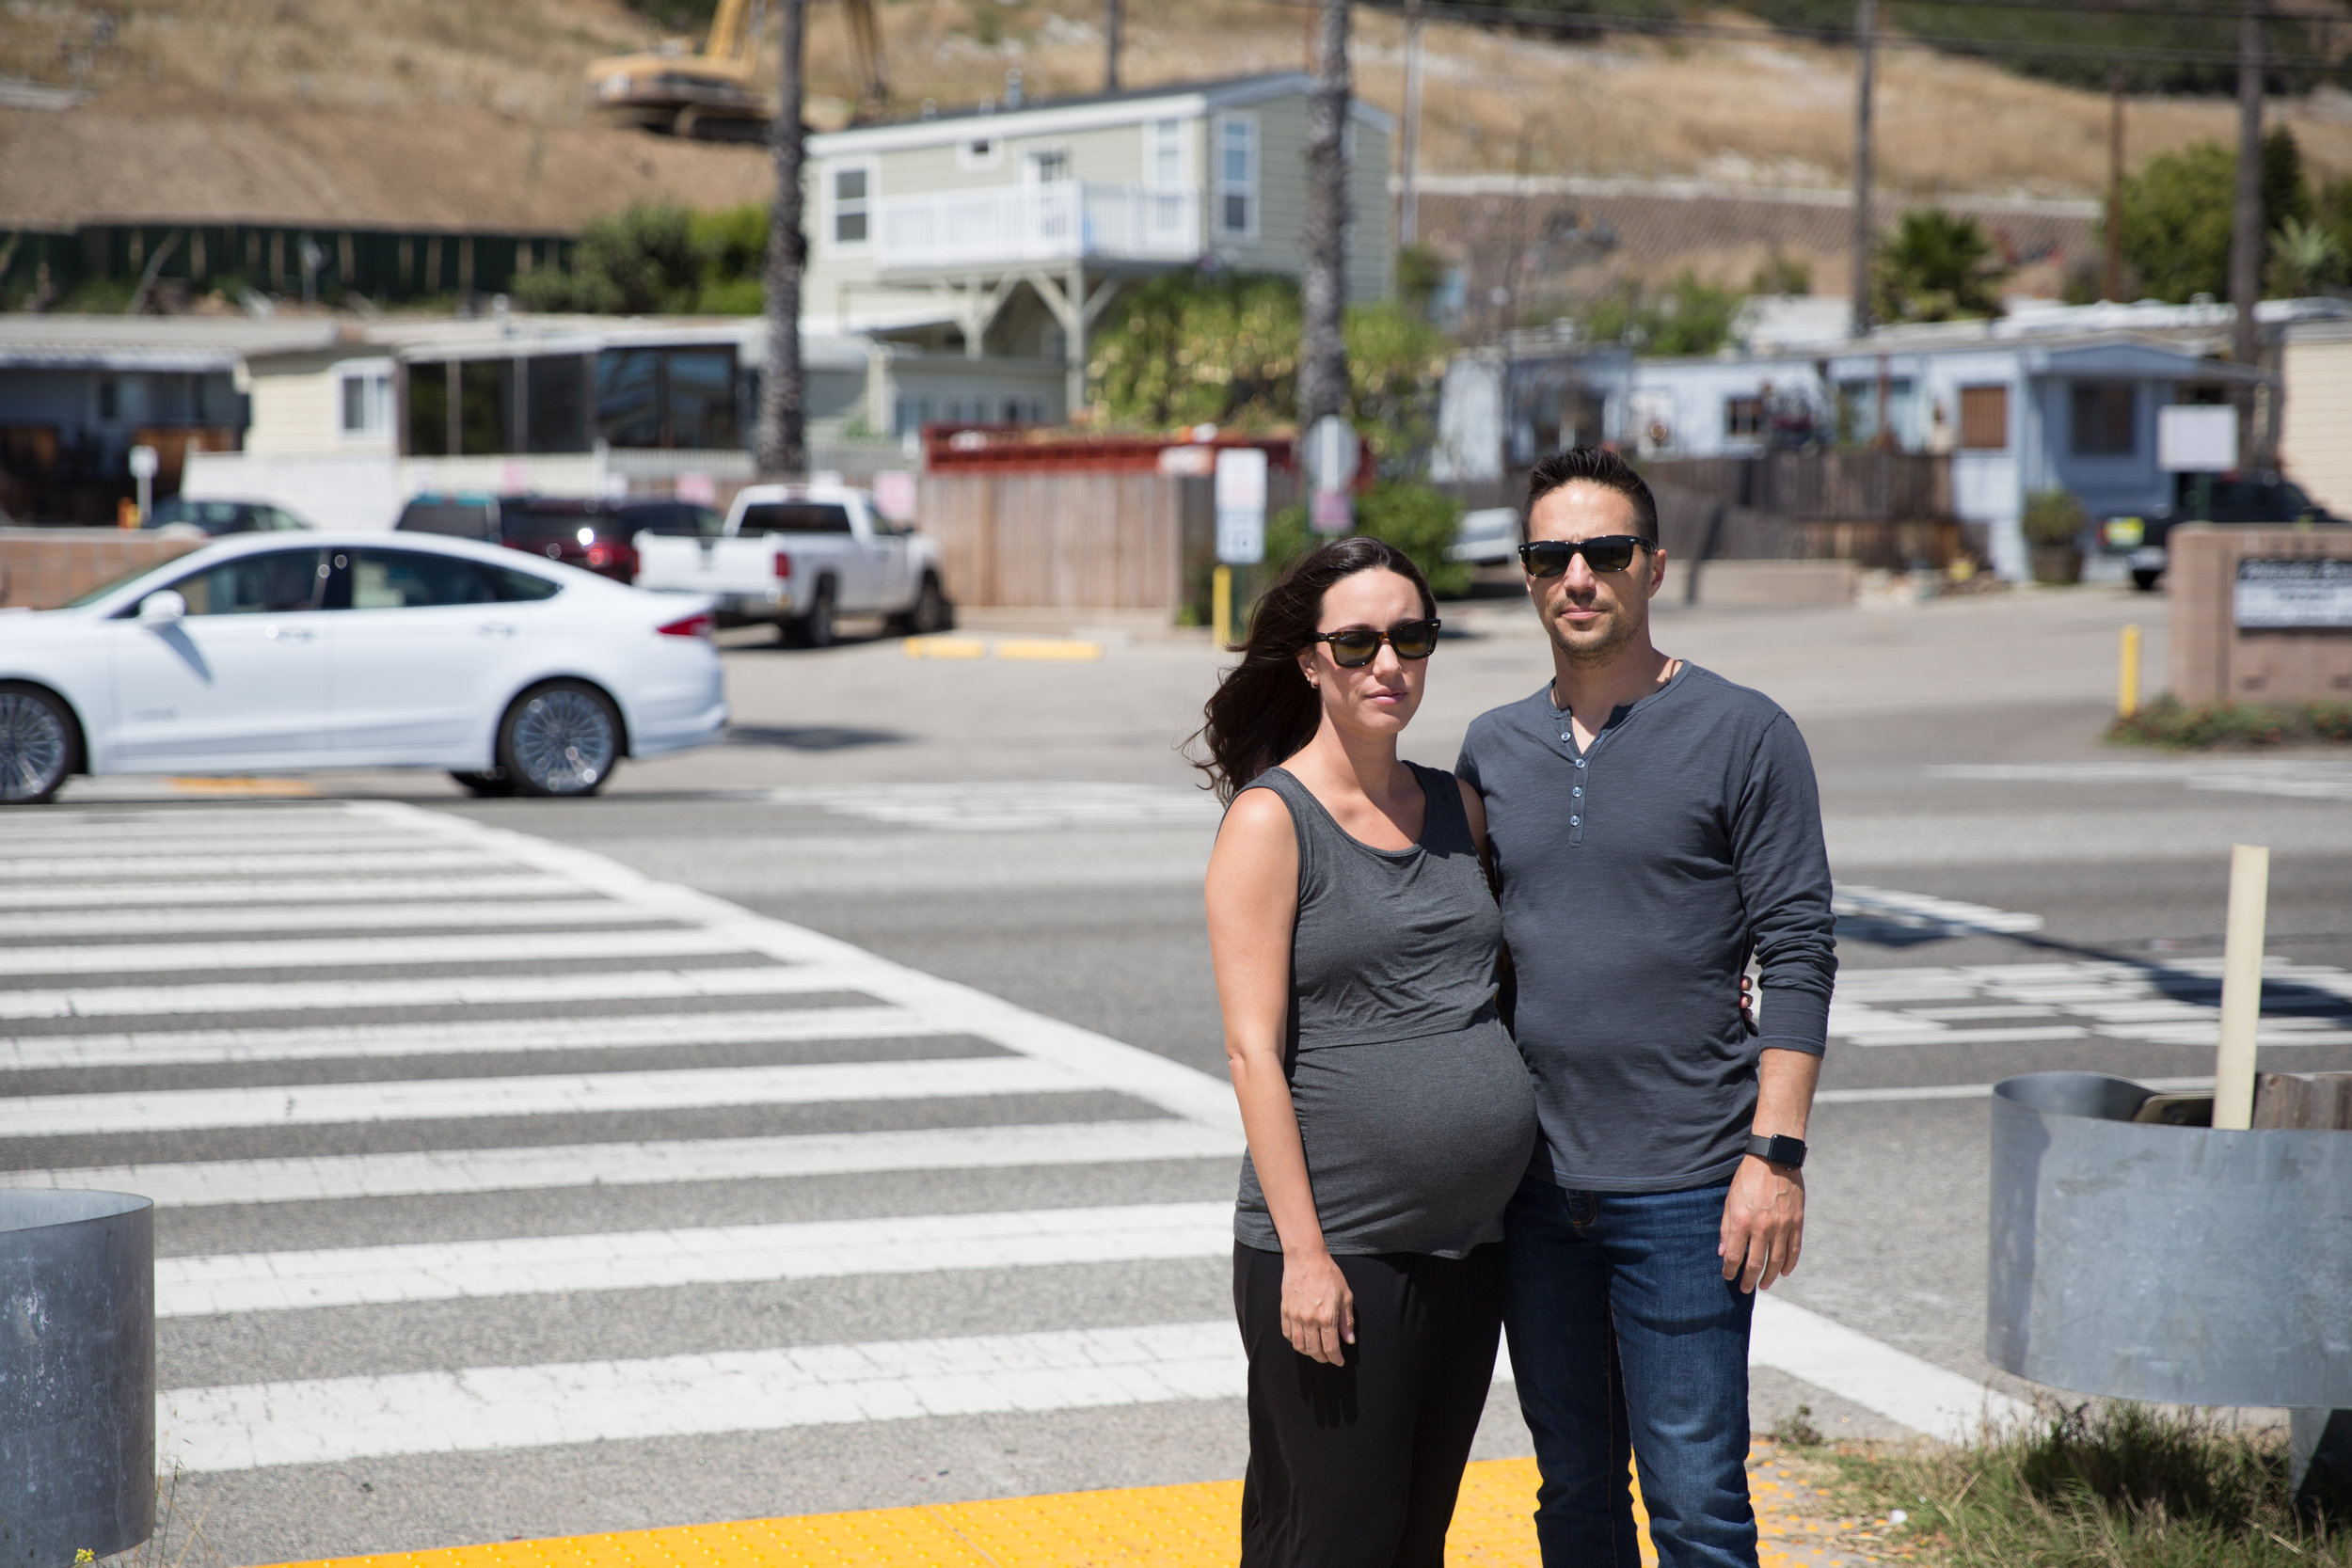 Michelle and Jon Brown stand at the crosswalk in front of the mobile home park they live in, where in 2015 Michelle and their family dog, Yogi, were tragically struck, killing Yogi and leaving Michelle with a three-inch scar on her forehead.